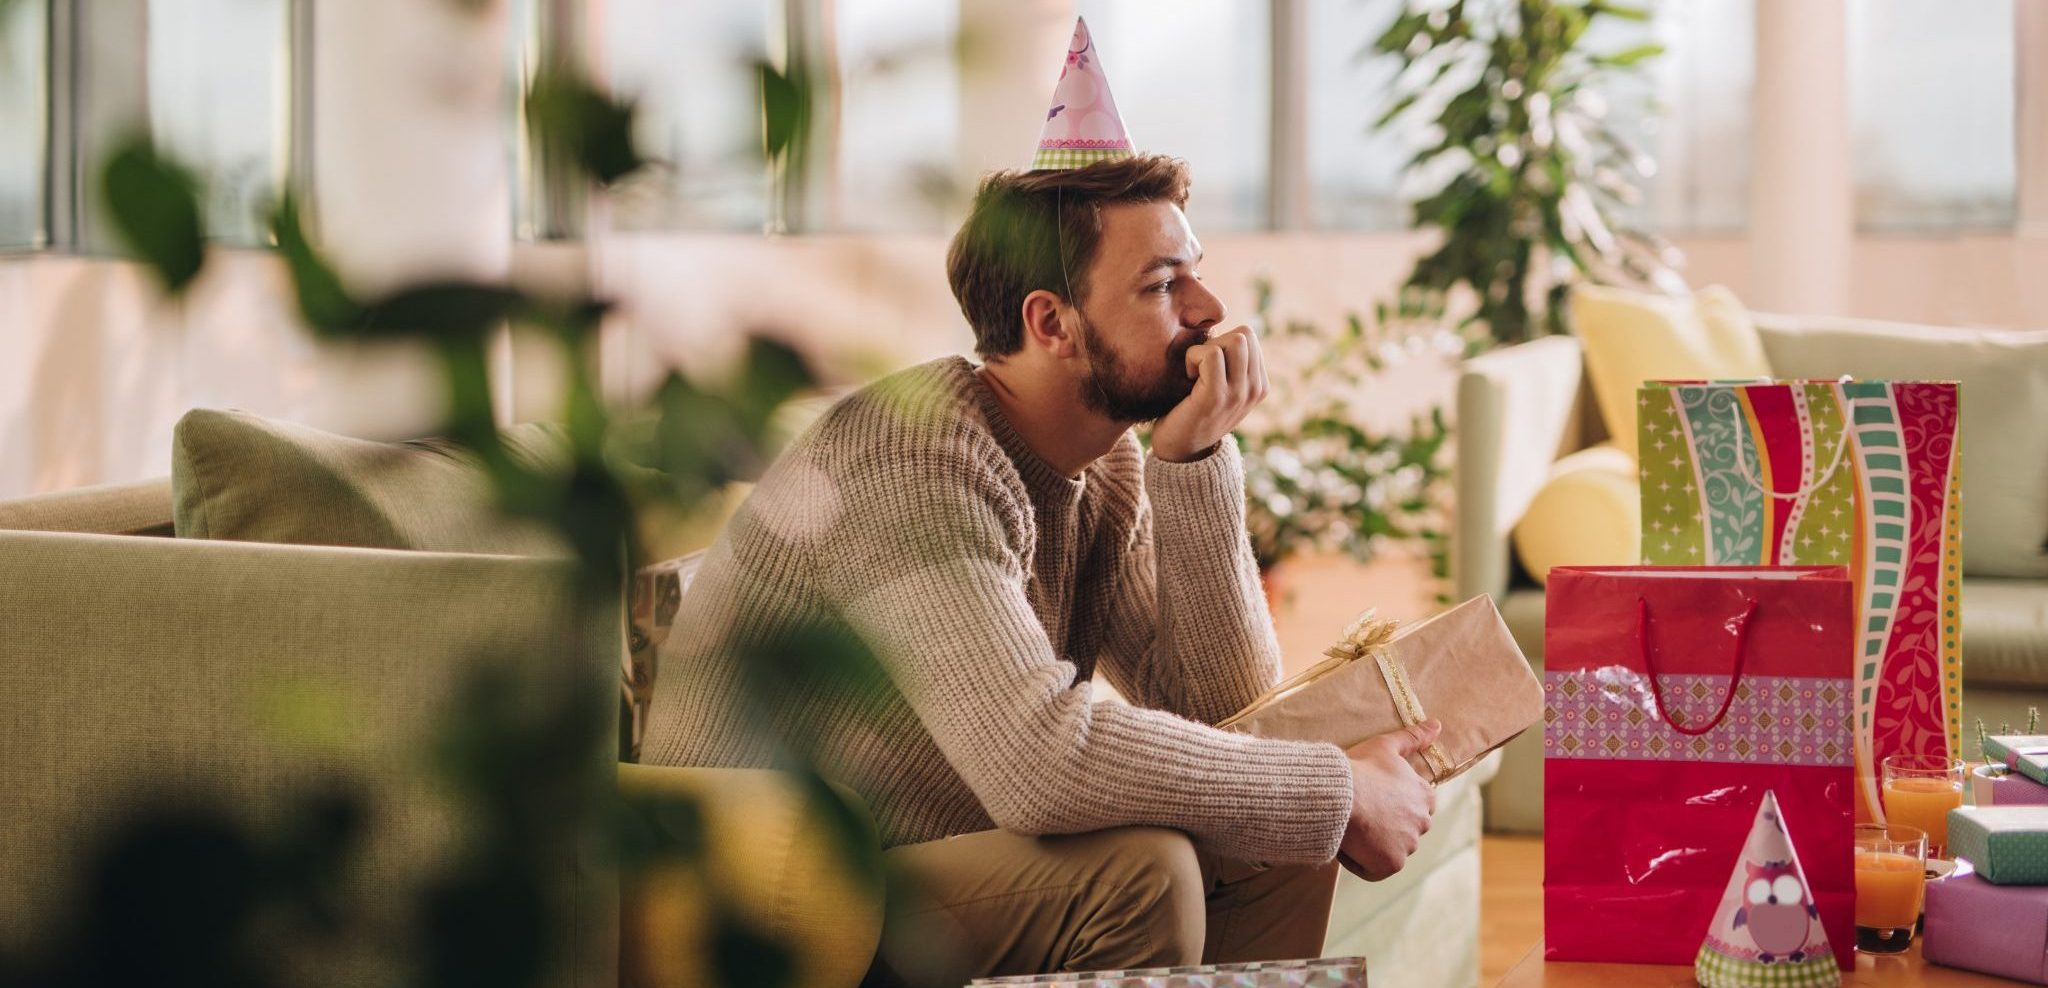 Feeling Sad on Your Birthday? Here's What You Can Do